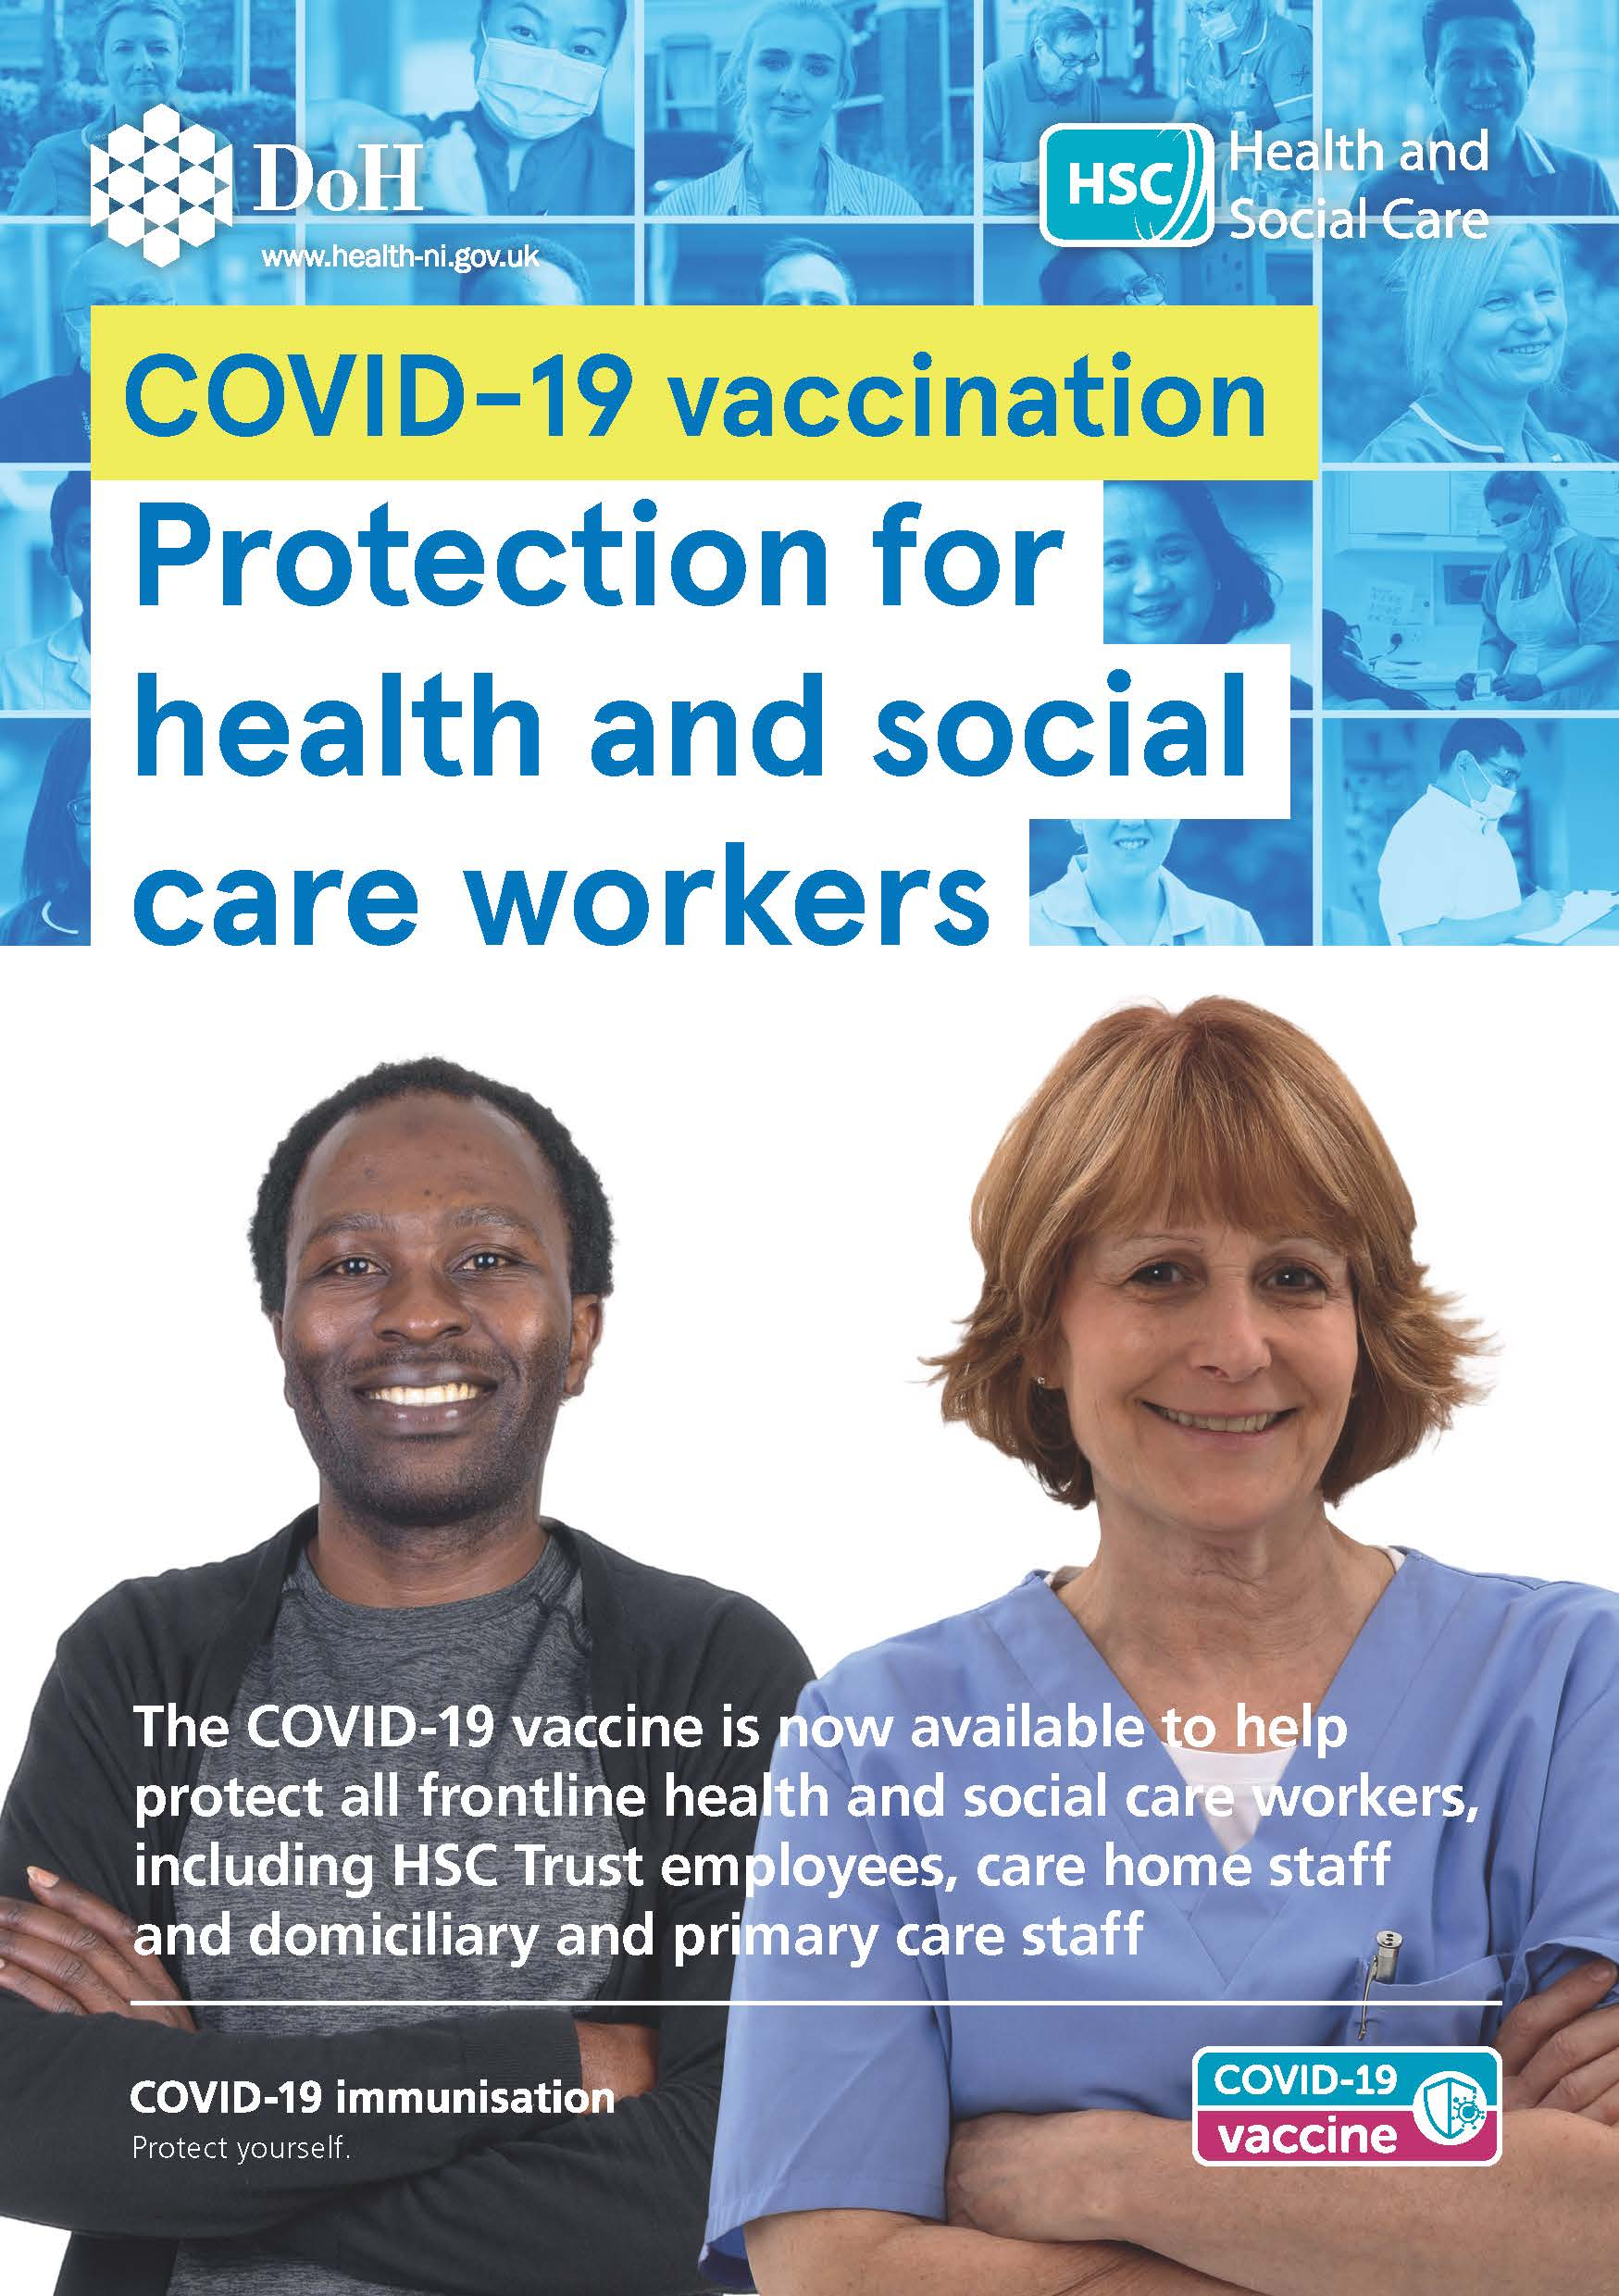 COVID-19 vaccination - health and social care workers leaflet image